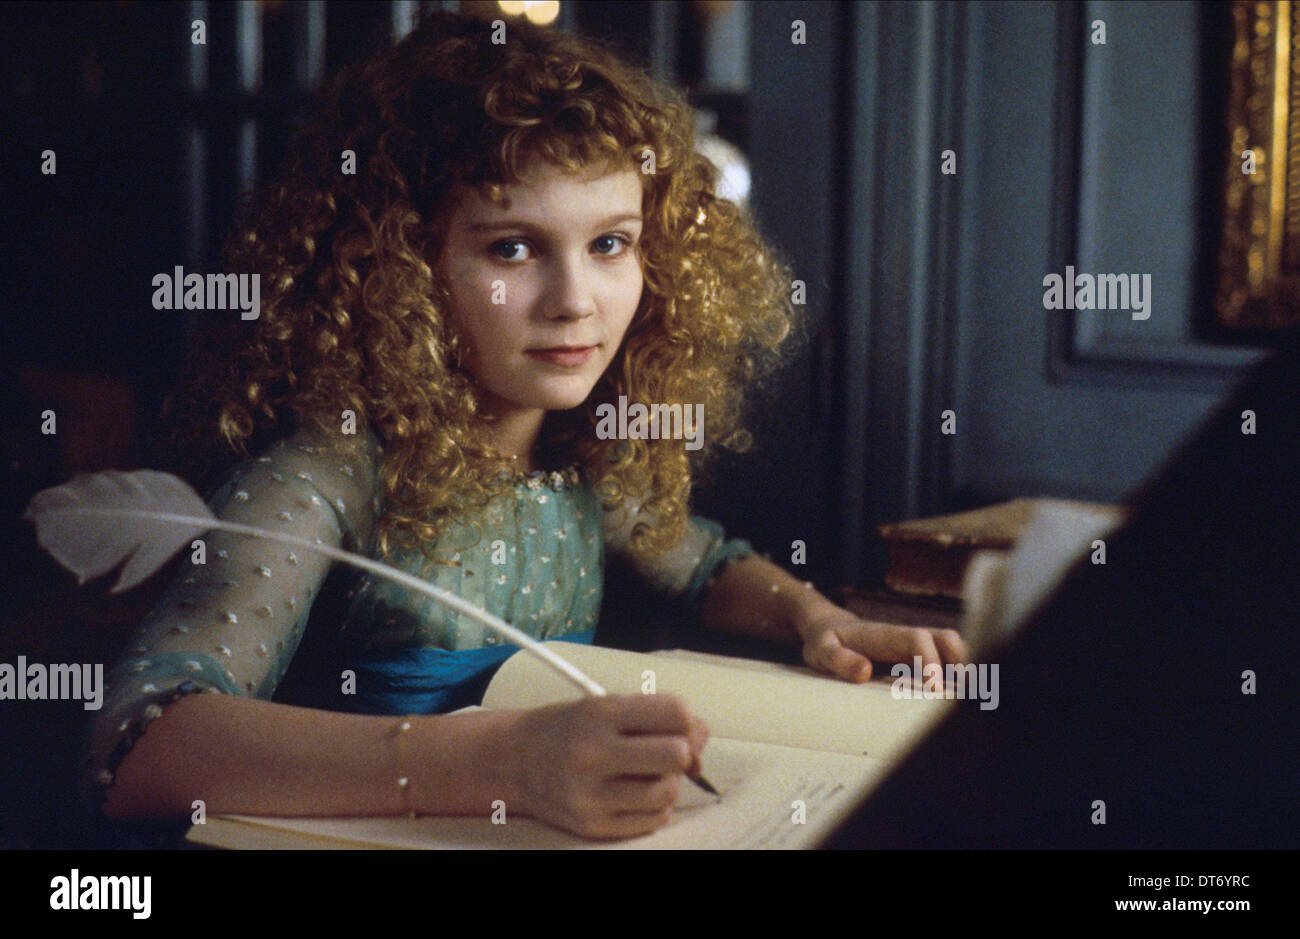 Kirsten Dunst Interview With The Vampire The Vampire Chronicles Stock Photo Alamy